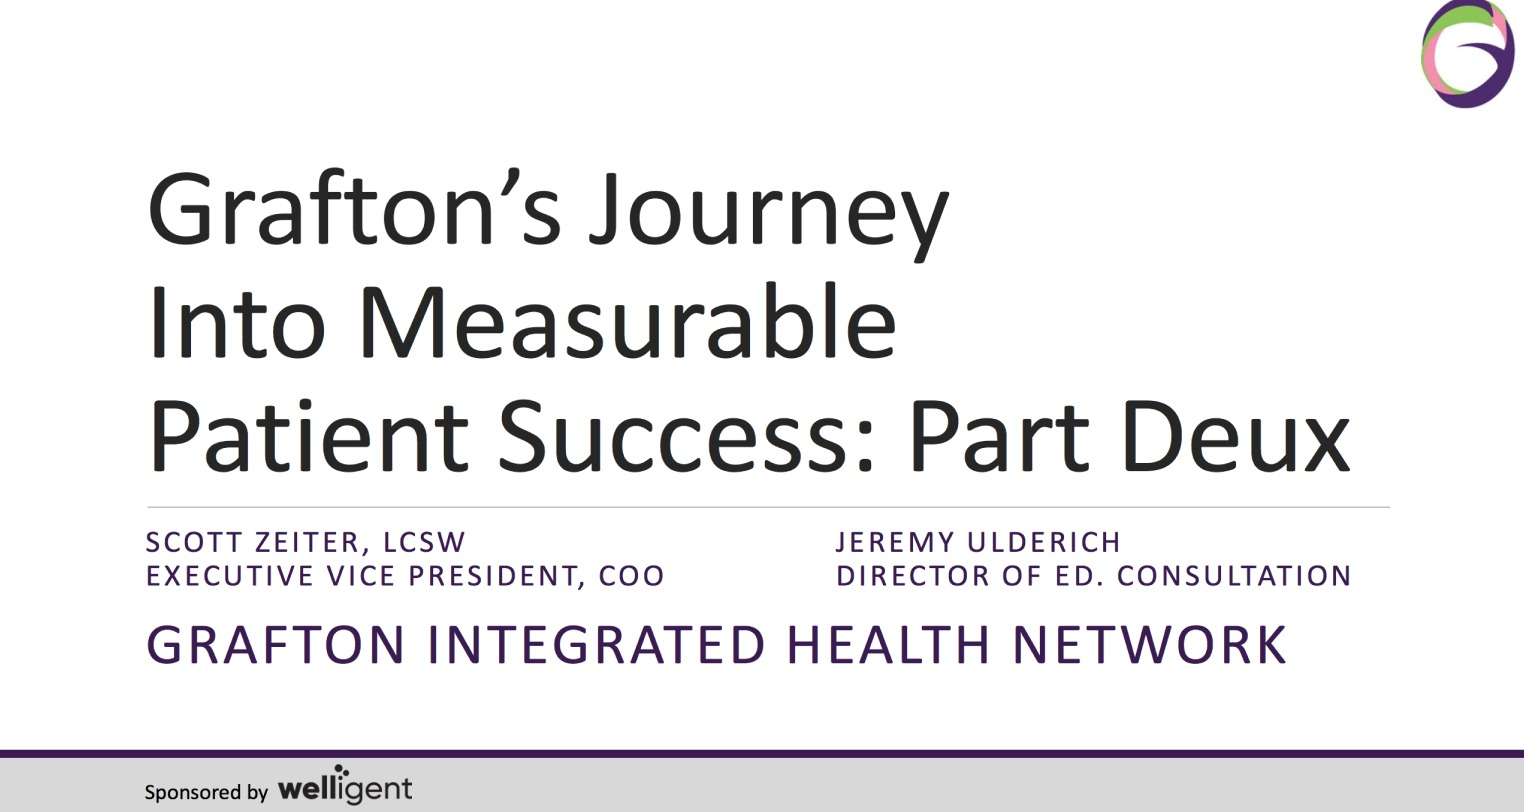 Knowledge Partner Session: Grafton's Journey Into Measurable Patient Success